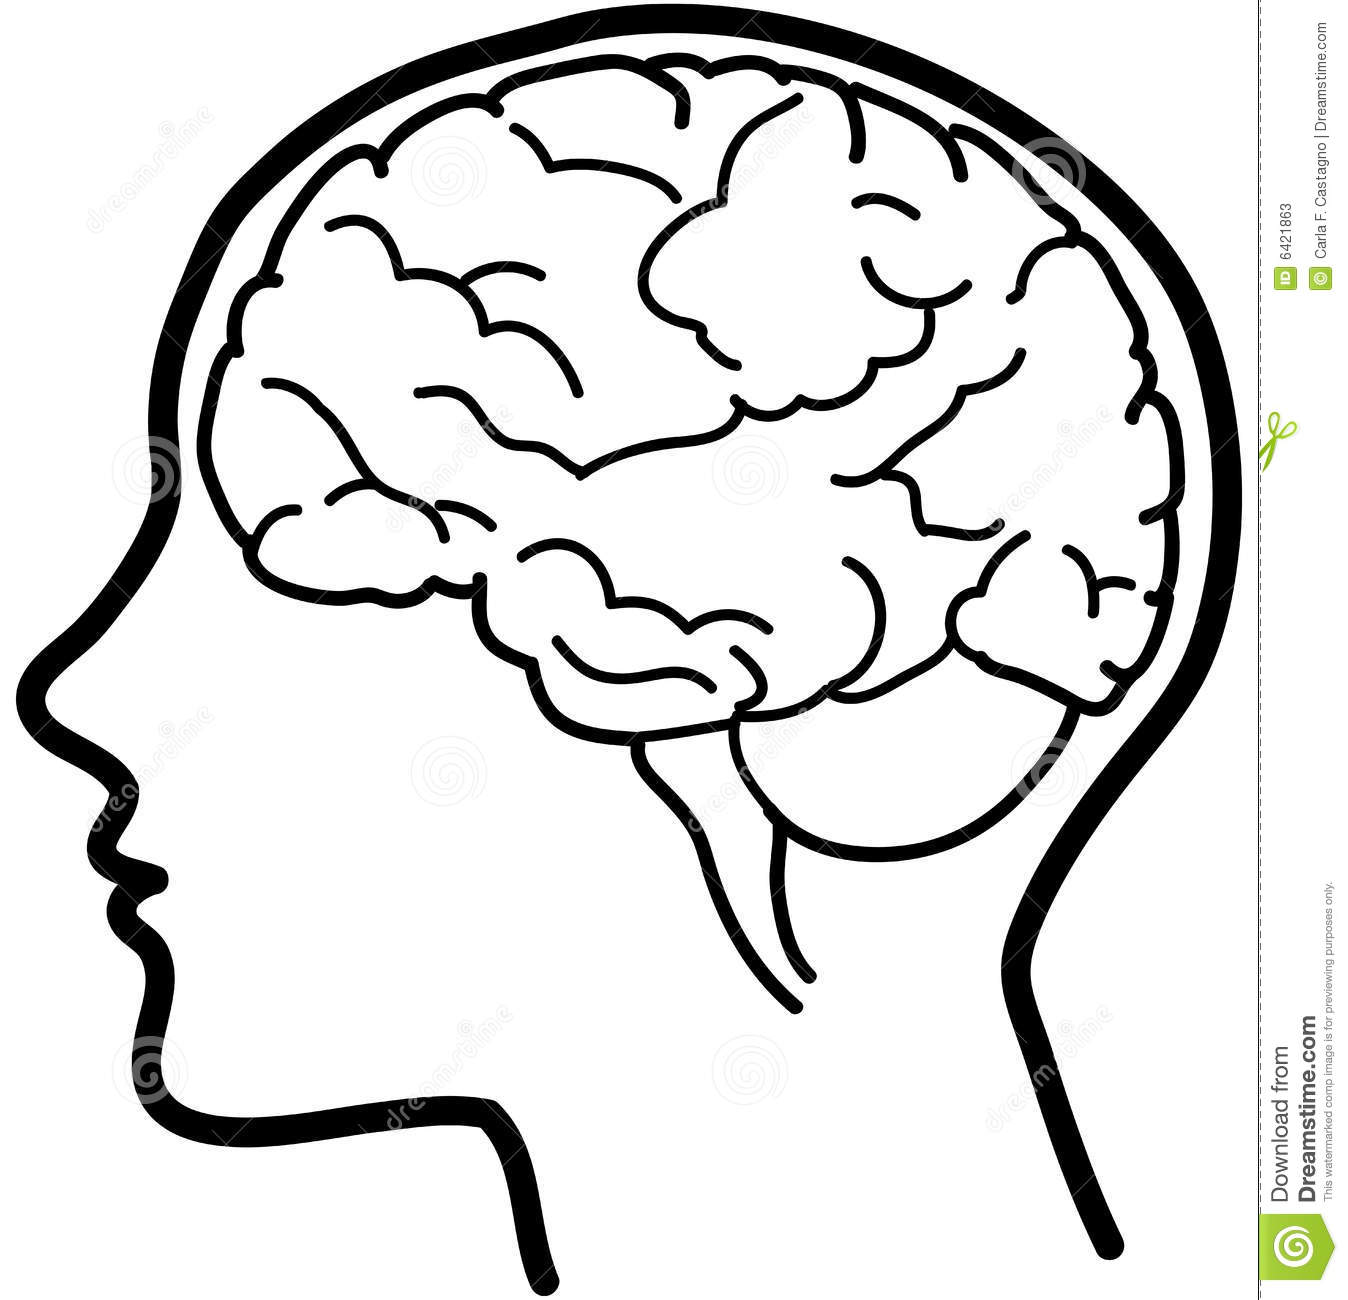 Mind clipart #5, Download drawings